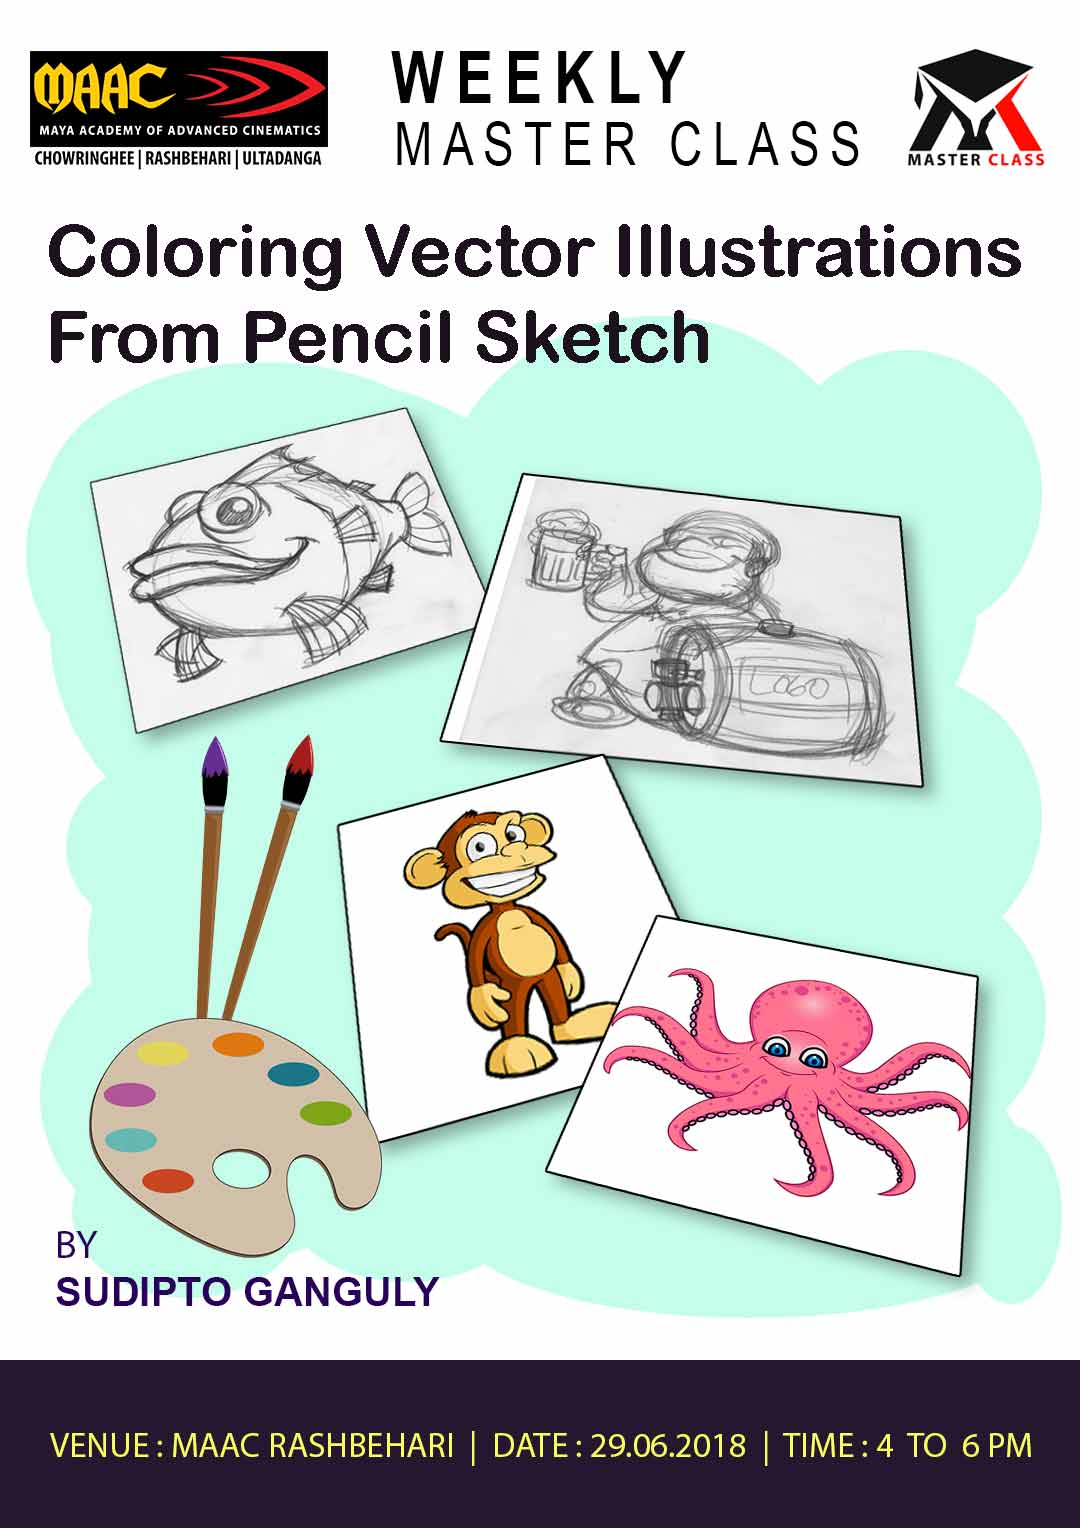 Weekly Master Class on Coloring Vector Illustrations from Pencil